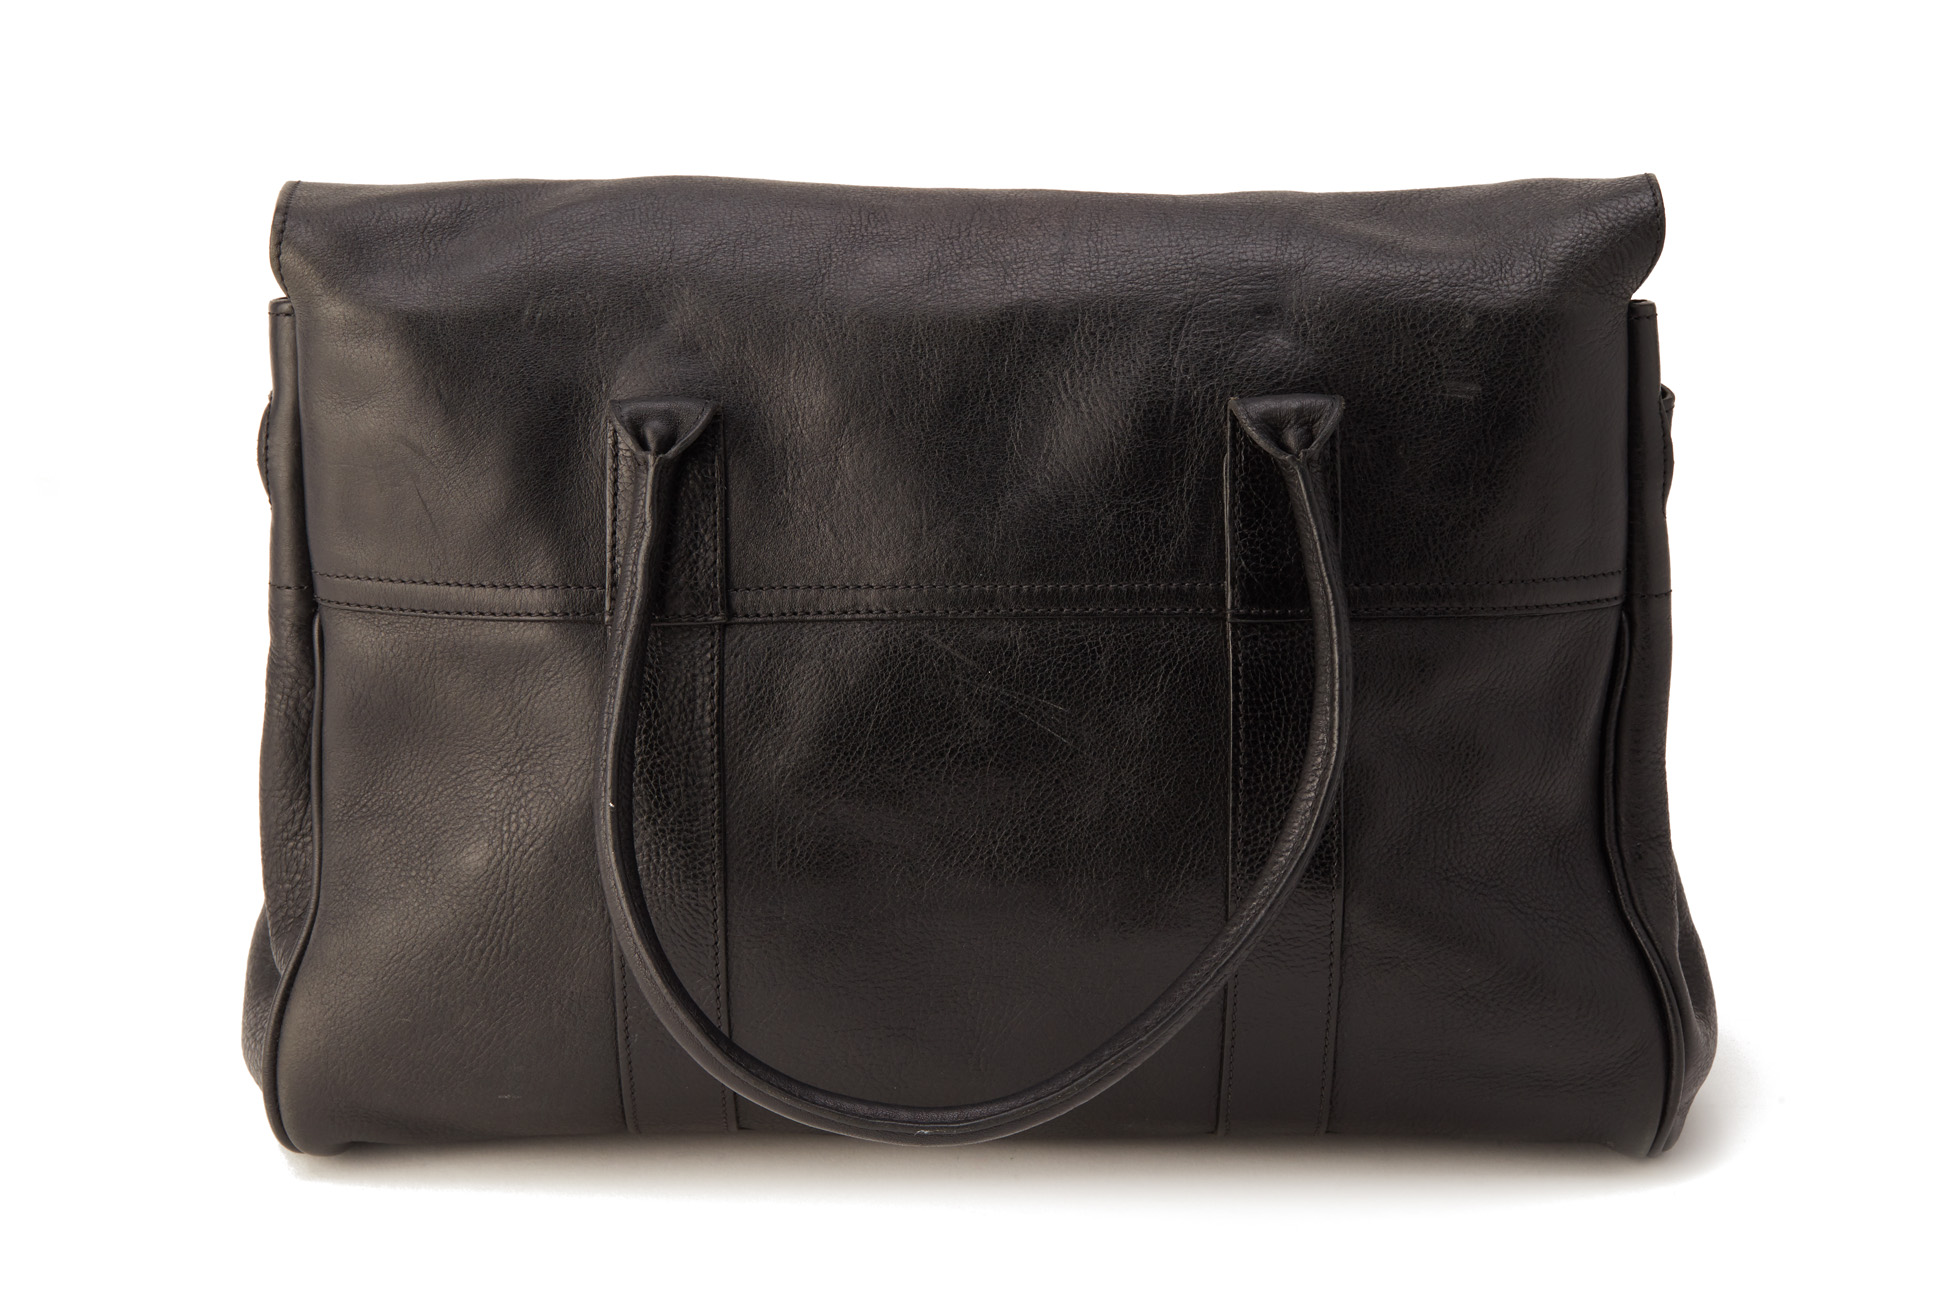 A MULBERRY BLACK BAYSWATER LEATHER TOTE BAG - Image 4 of 4